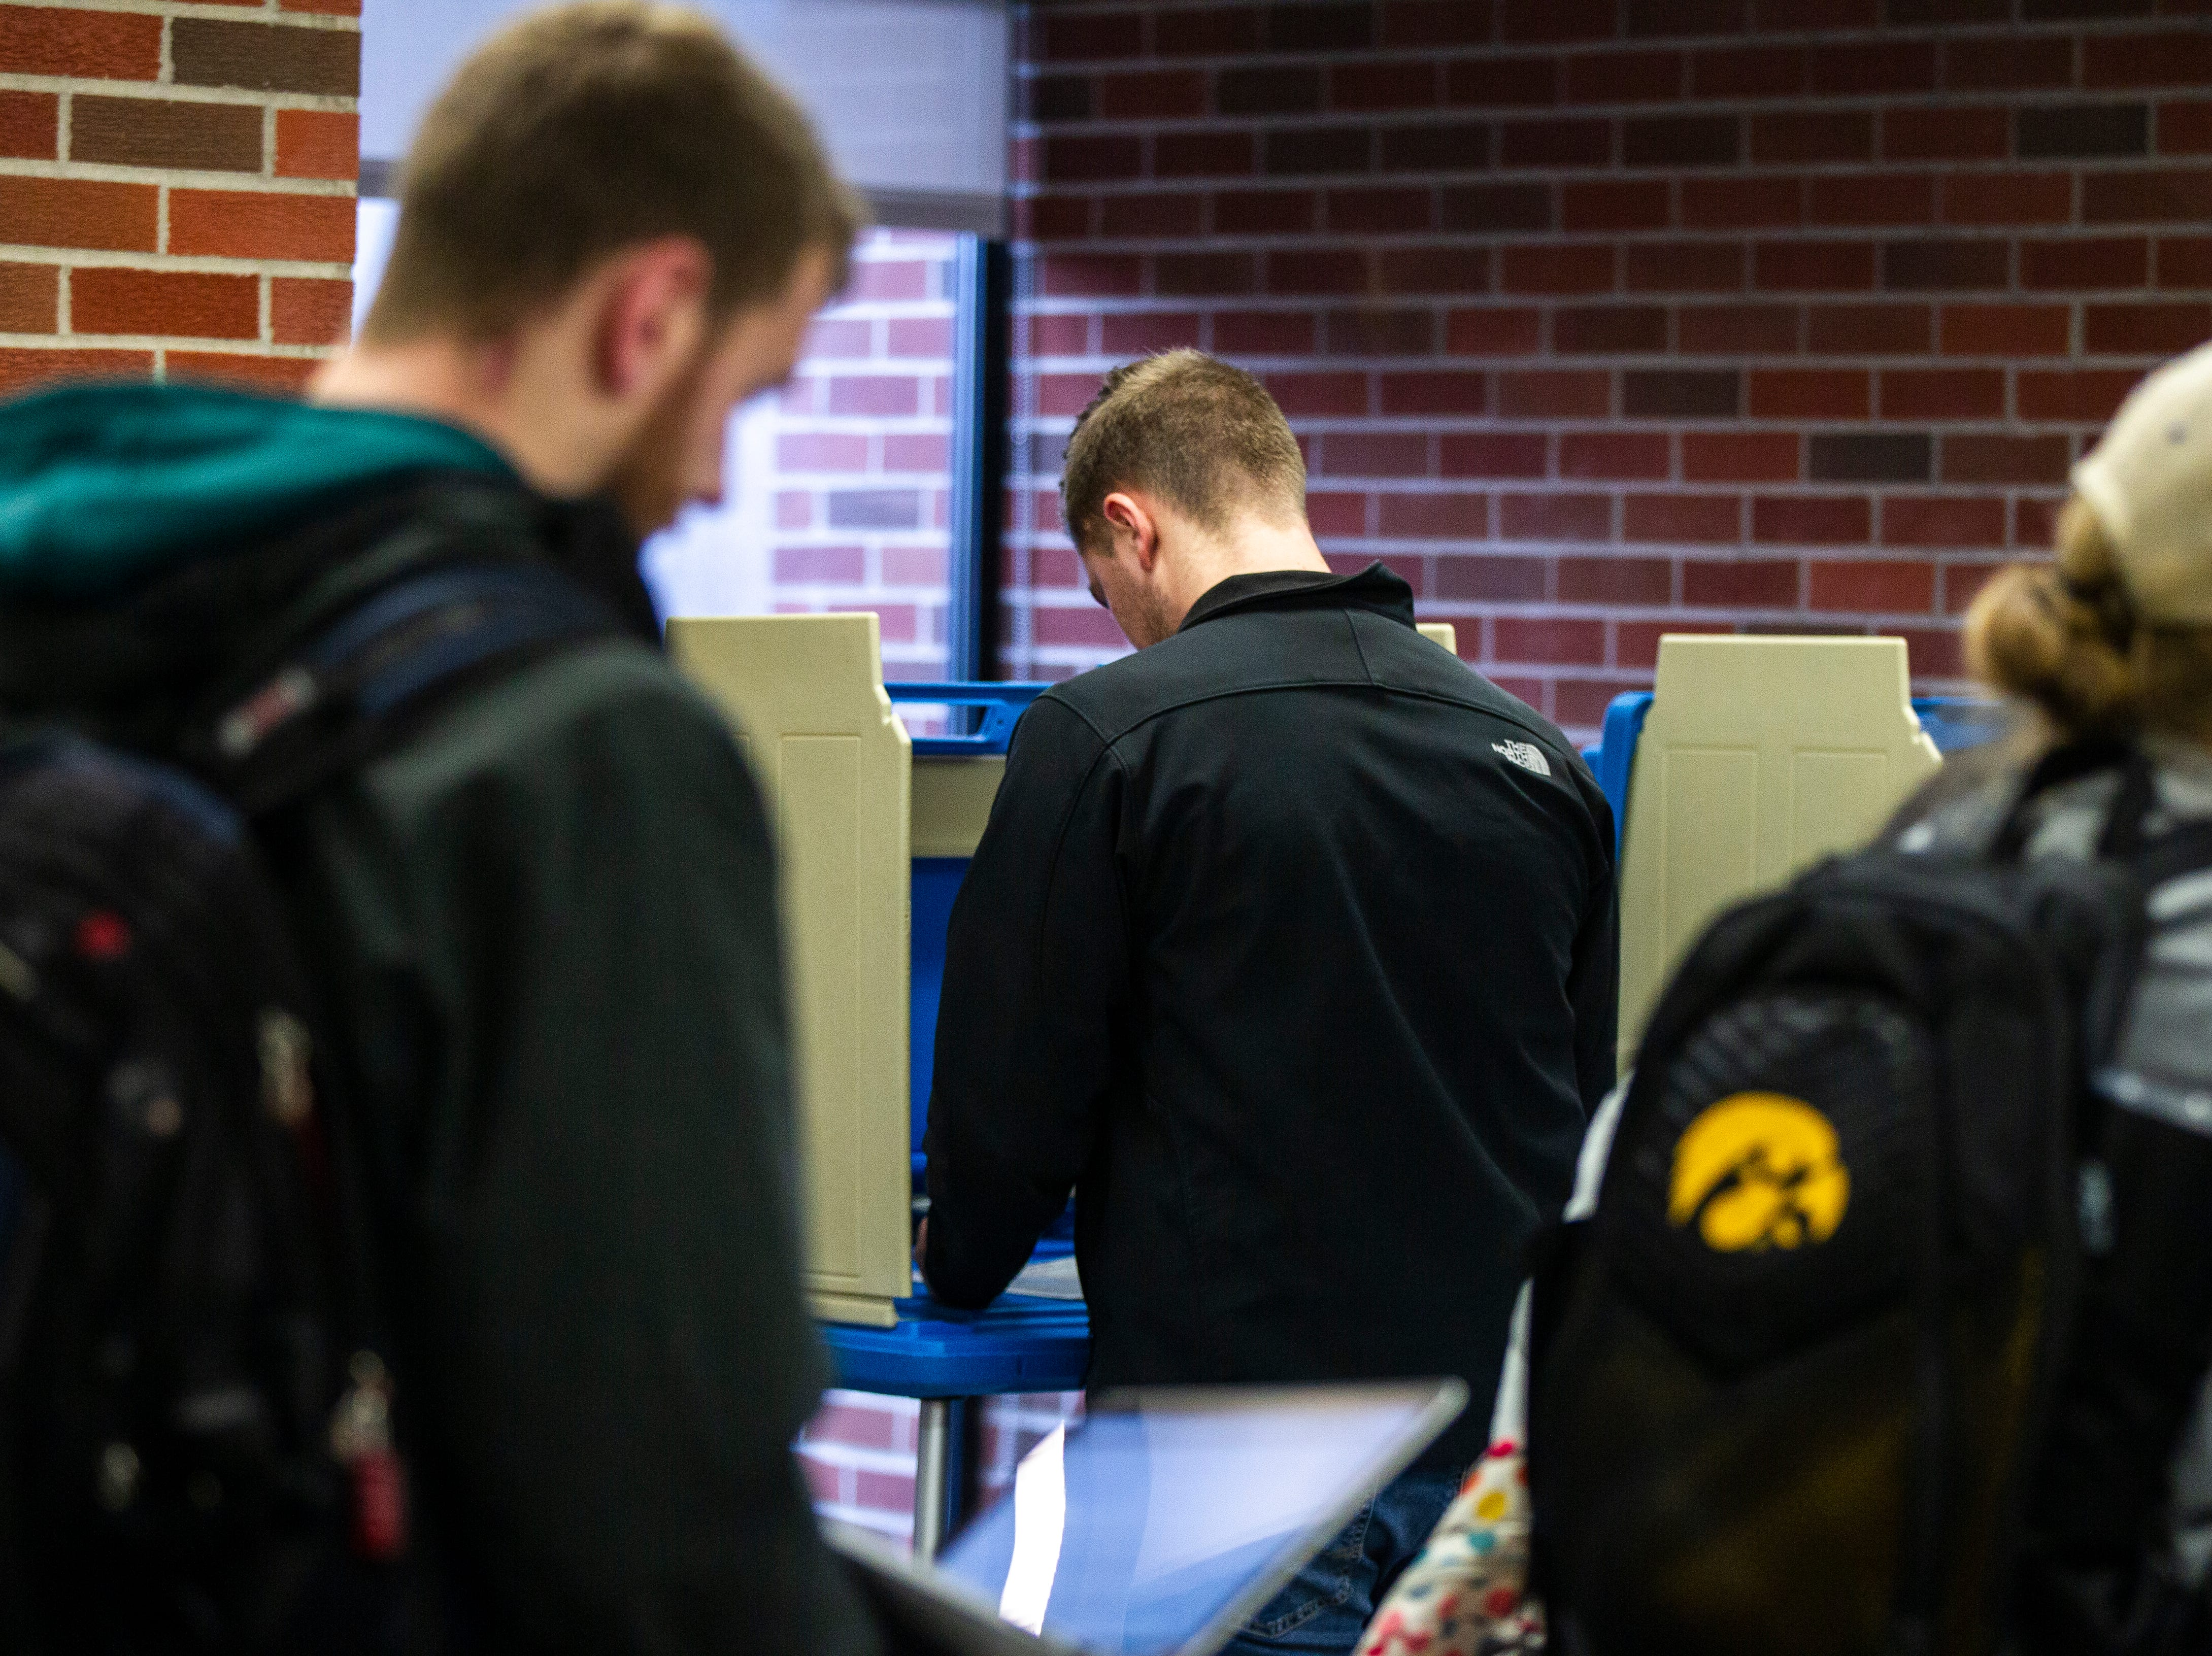 Students vote inside Iowa City precinct 11 on Tuesday, Nov. 6, 2018, at the University of Iowa Main Library in Iowa City.